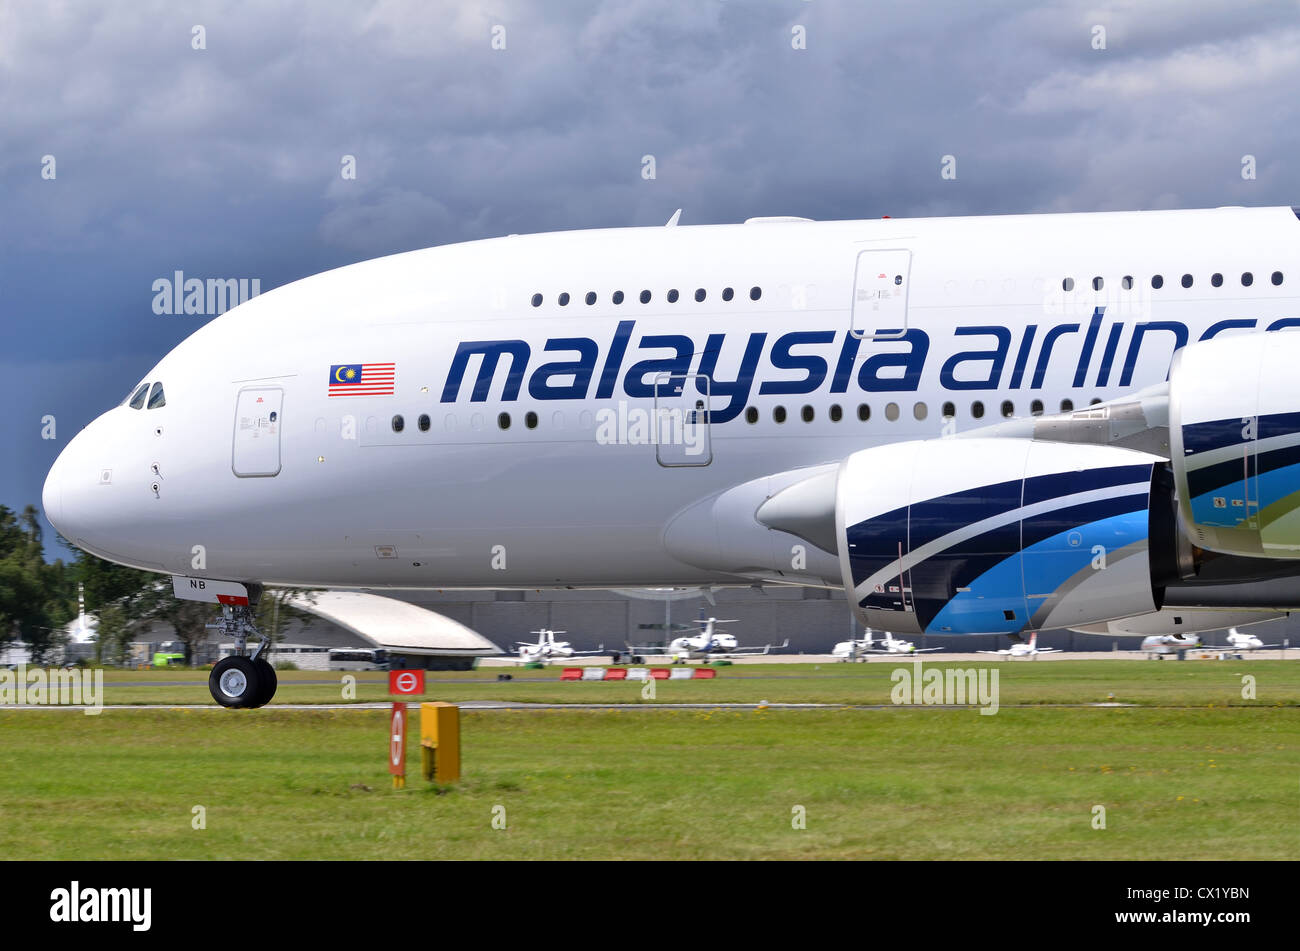 Airbus A380 in the colours of Malaysia Airlines rolling out after landing at Farnborough International Airshow 2012 - Stock Image